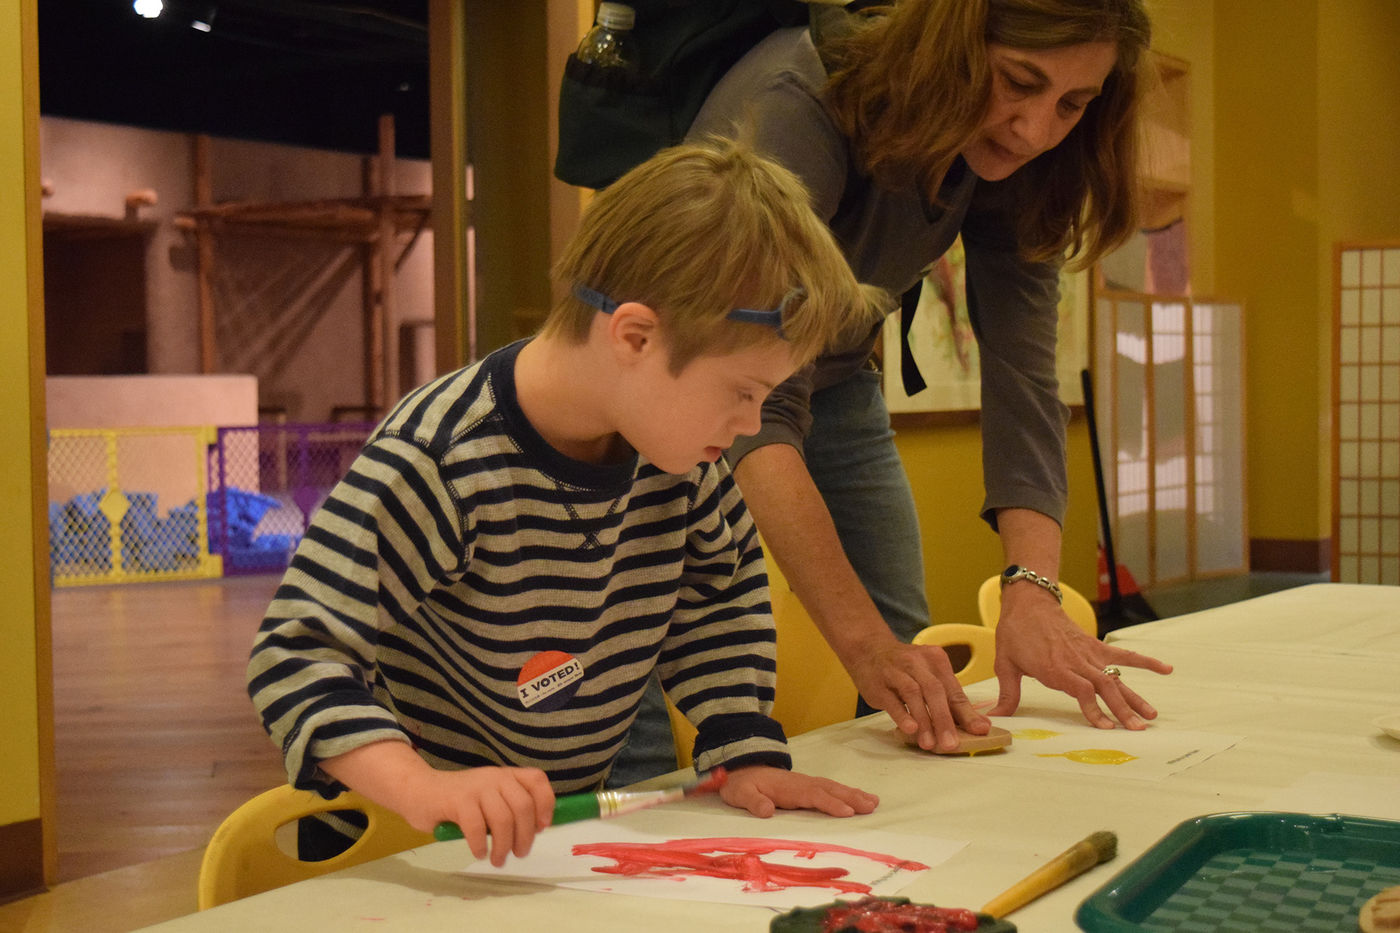 A young visitor paints with his caretaker at a table.